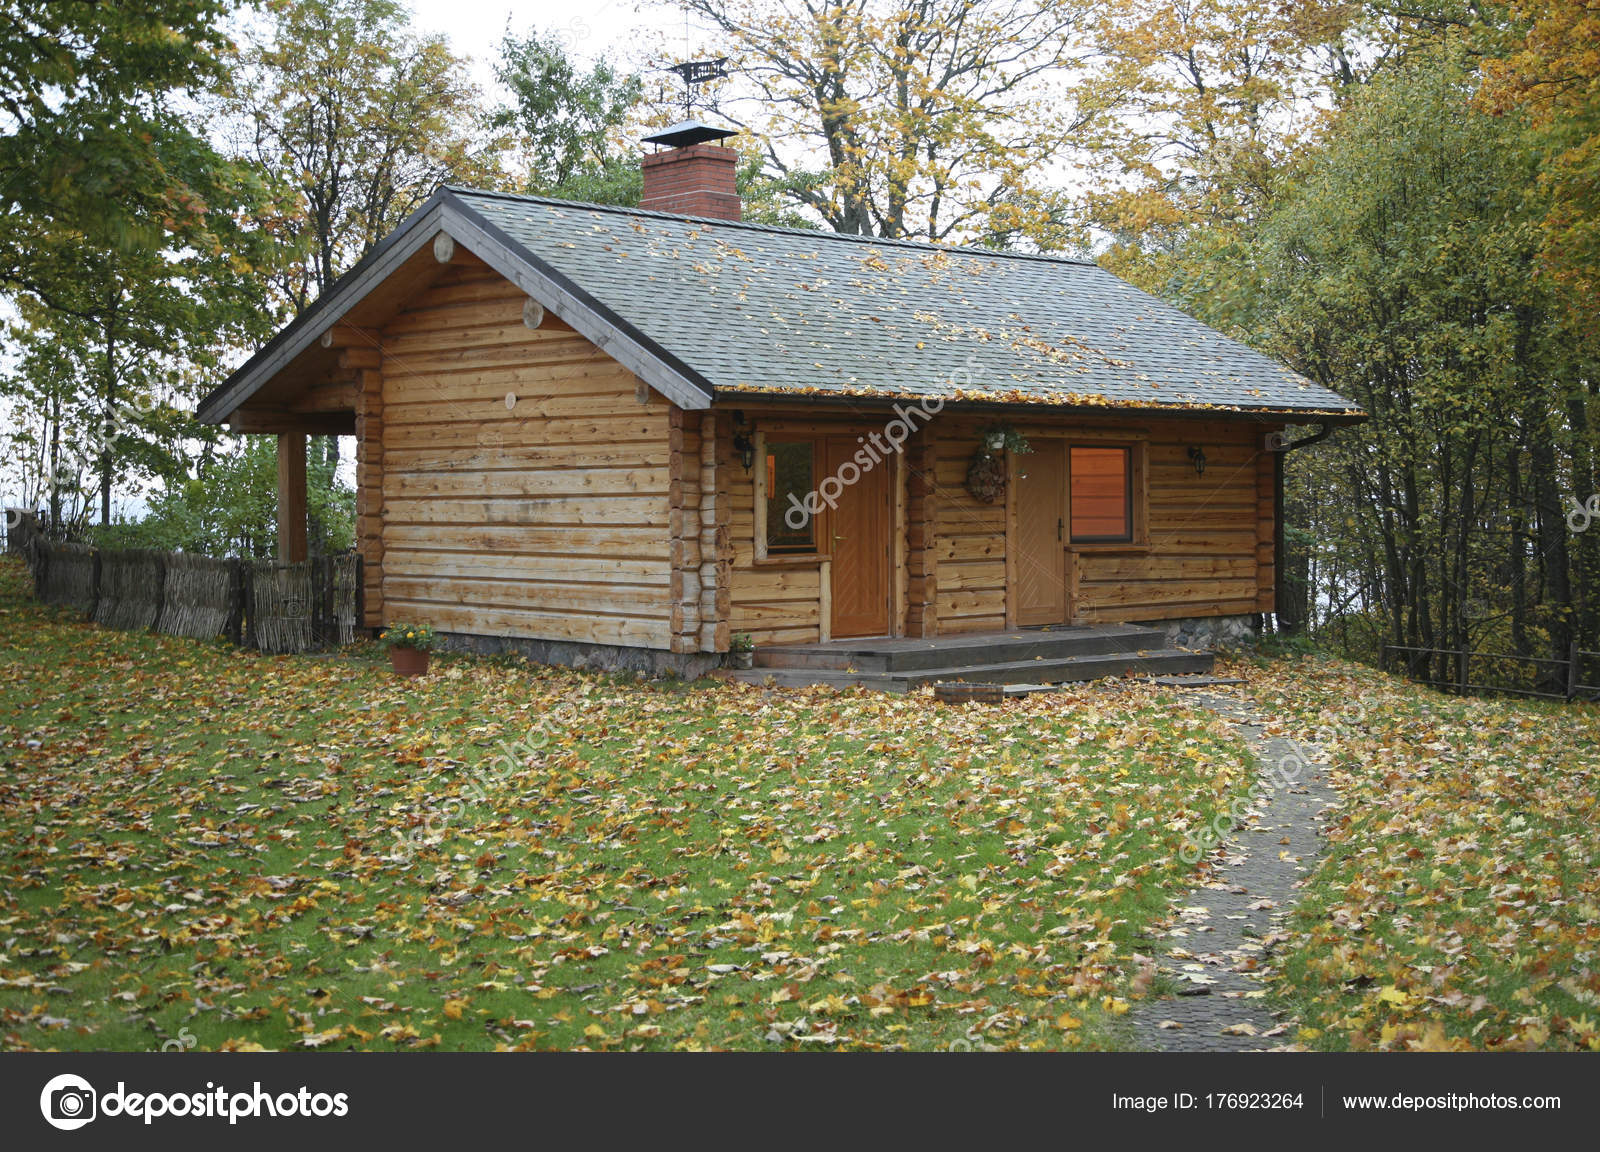 Small Wooden House Into The Wild Stock Photo C Zveiger 176923264